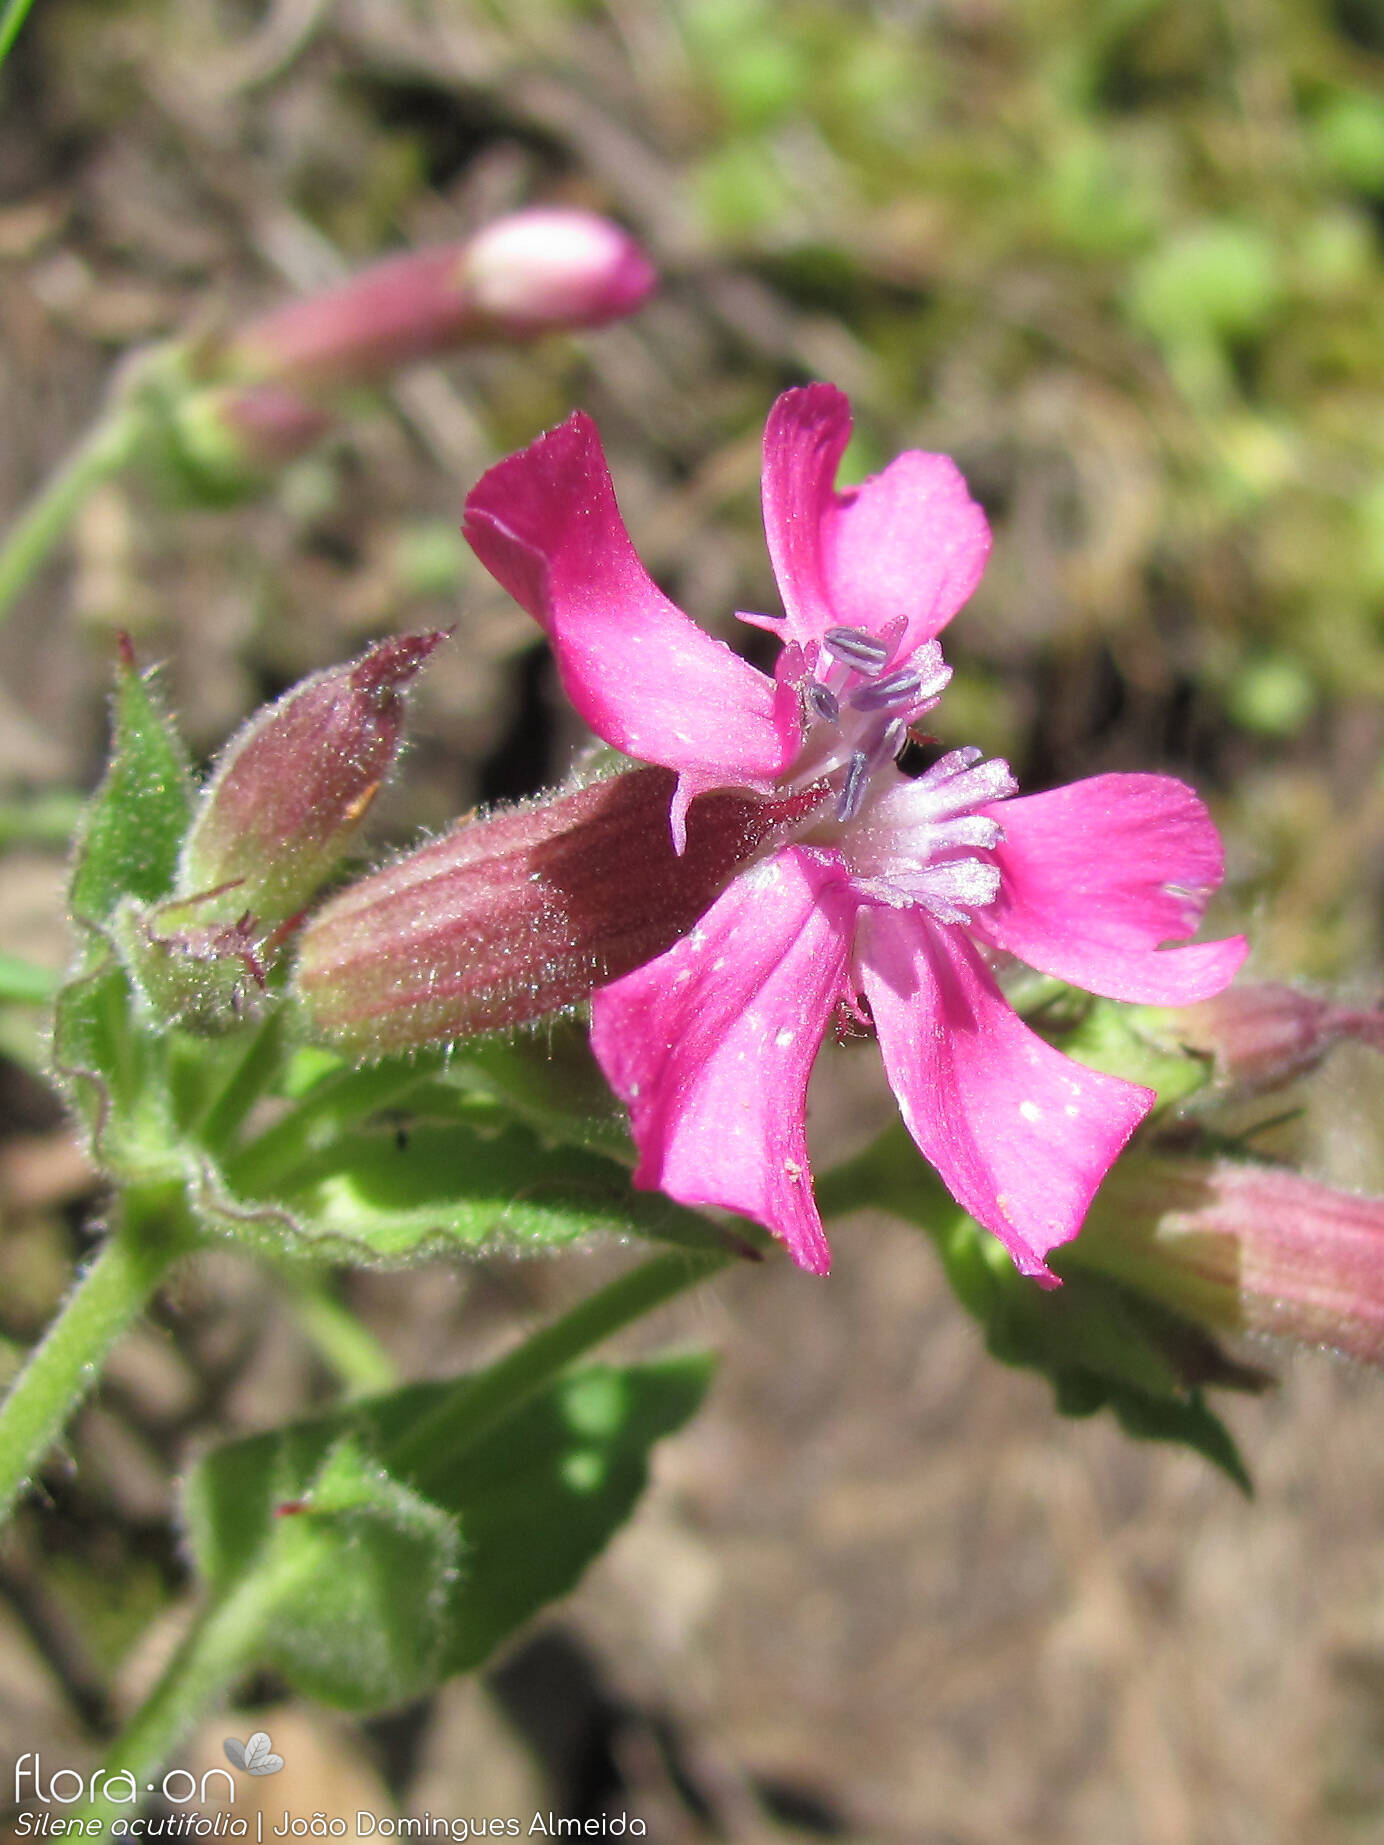 Silene acutifolia - Flor (close-up) | João D. Almeida; CC BY-NC 4.0